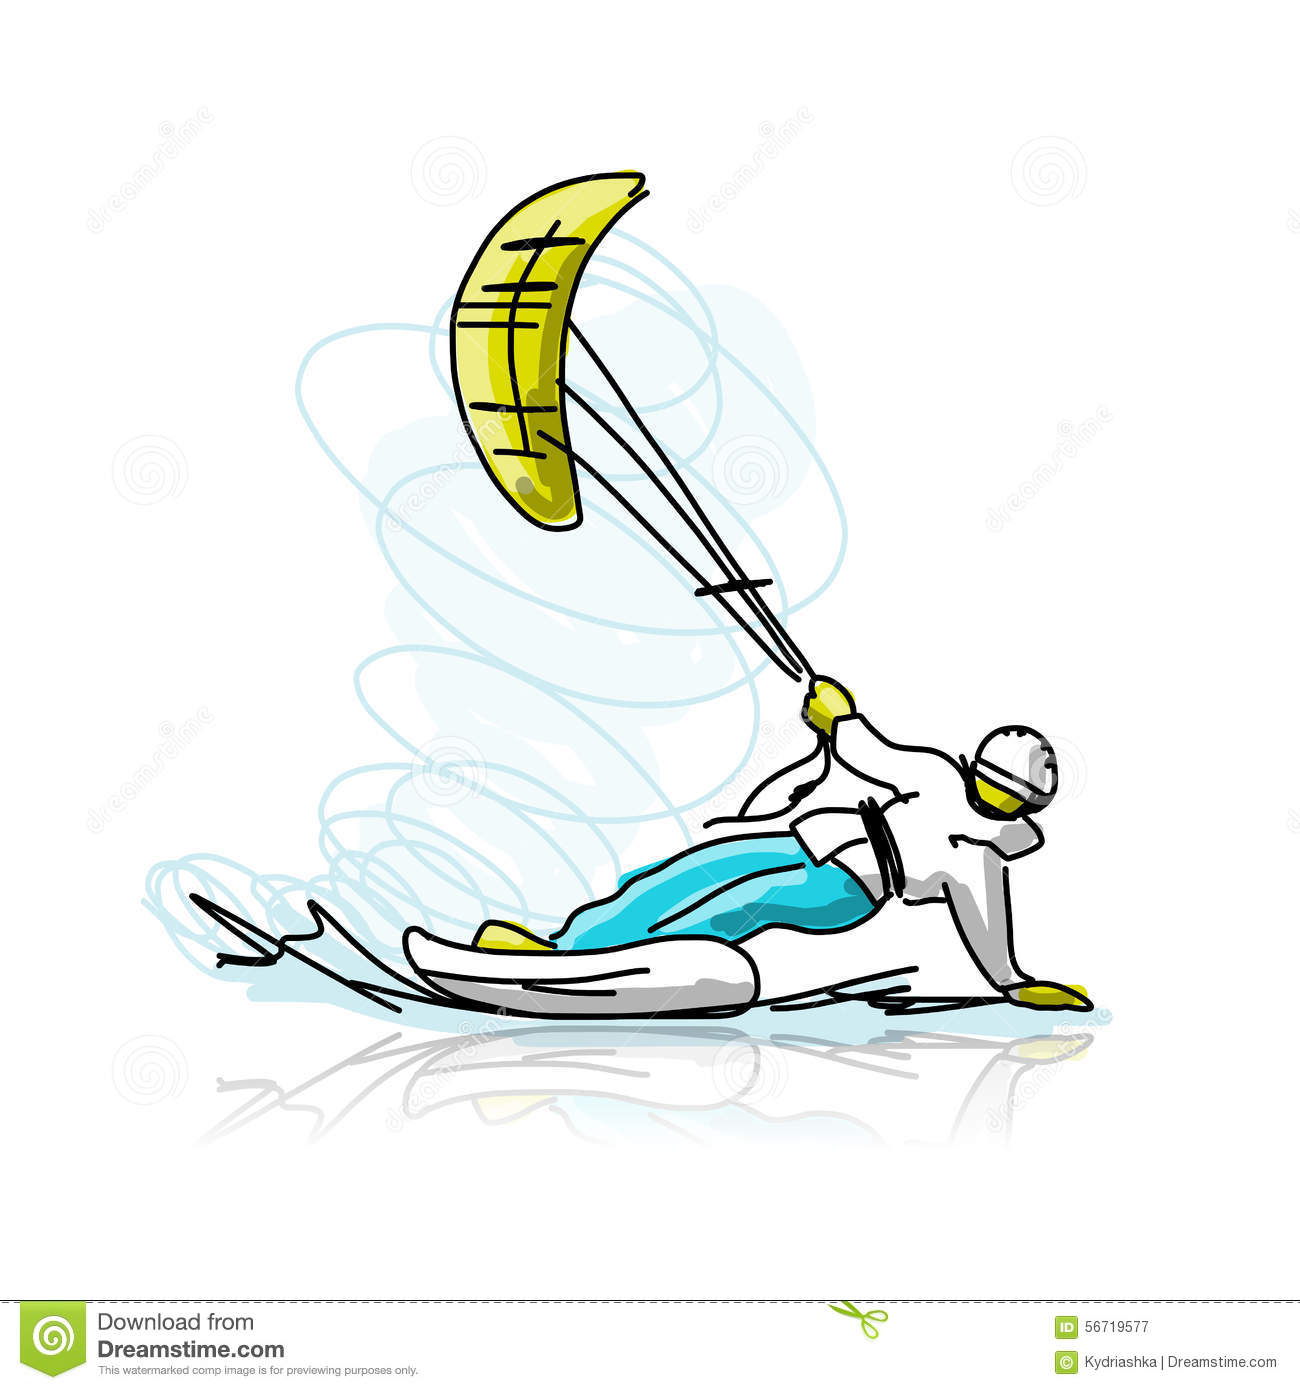 Kite Surfer On Snowboard, Sketch For Your Design Stock Vector.